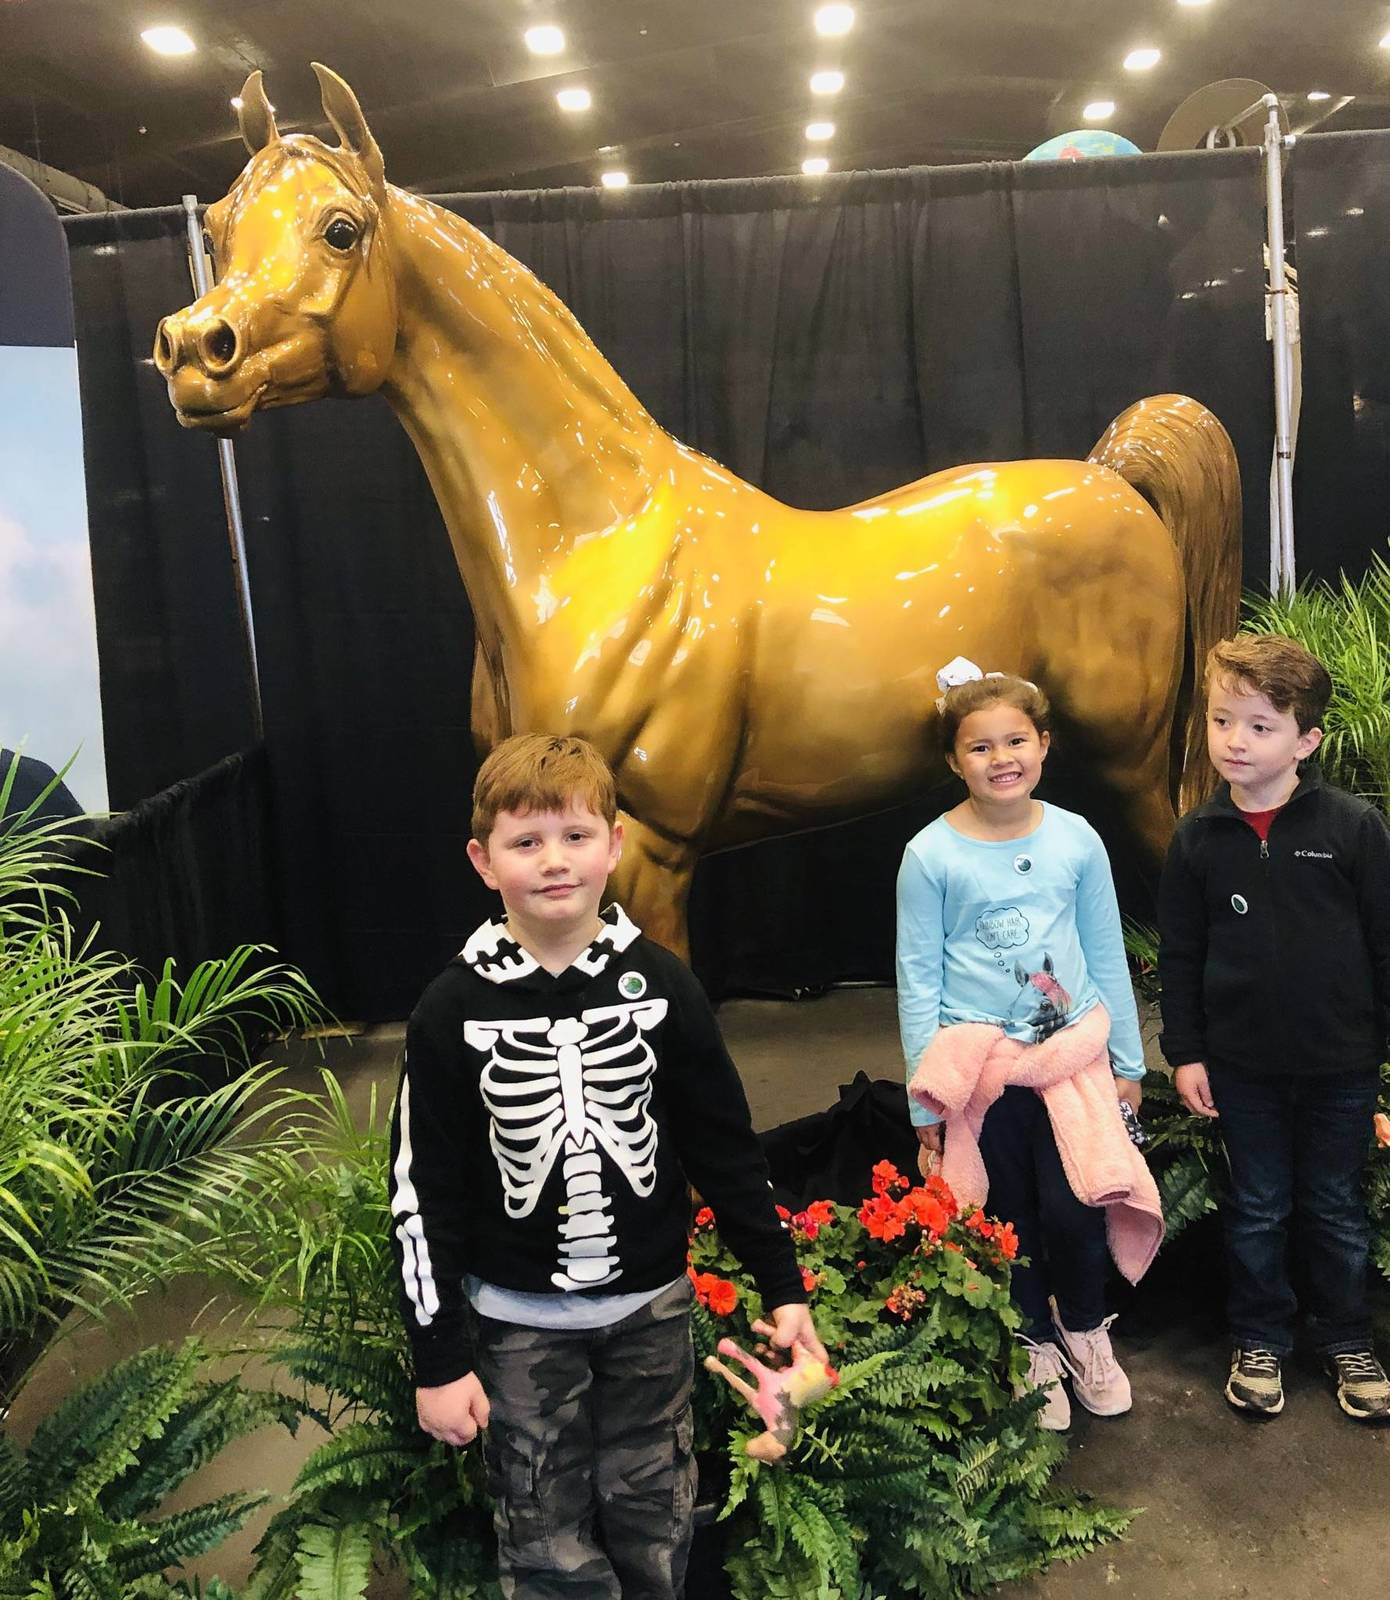 Fun times at the Scottsdale Arabian Horse Show 2019